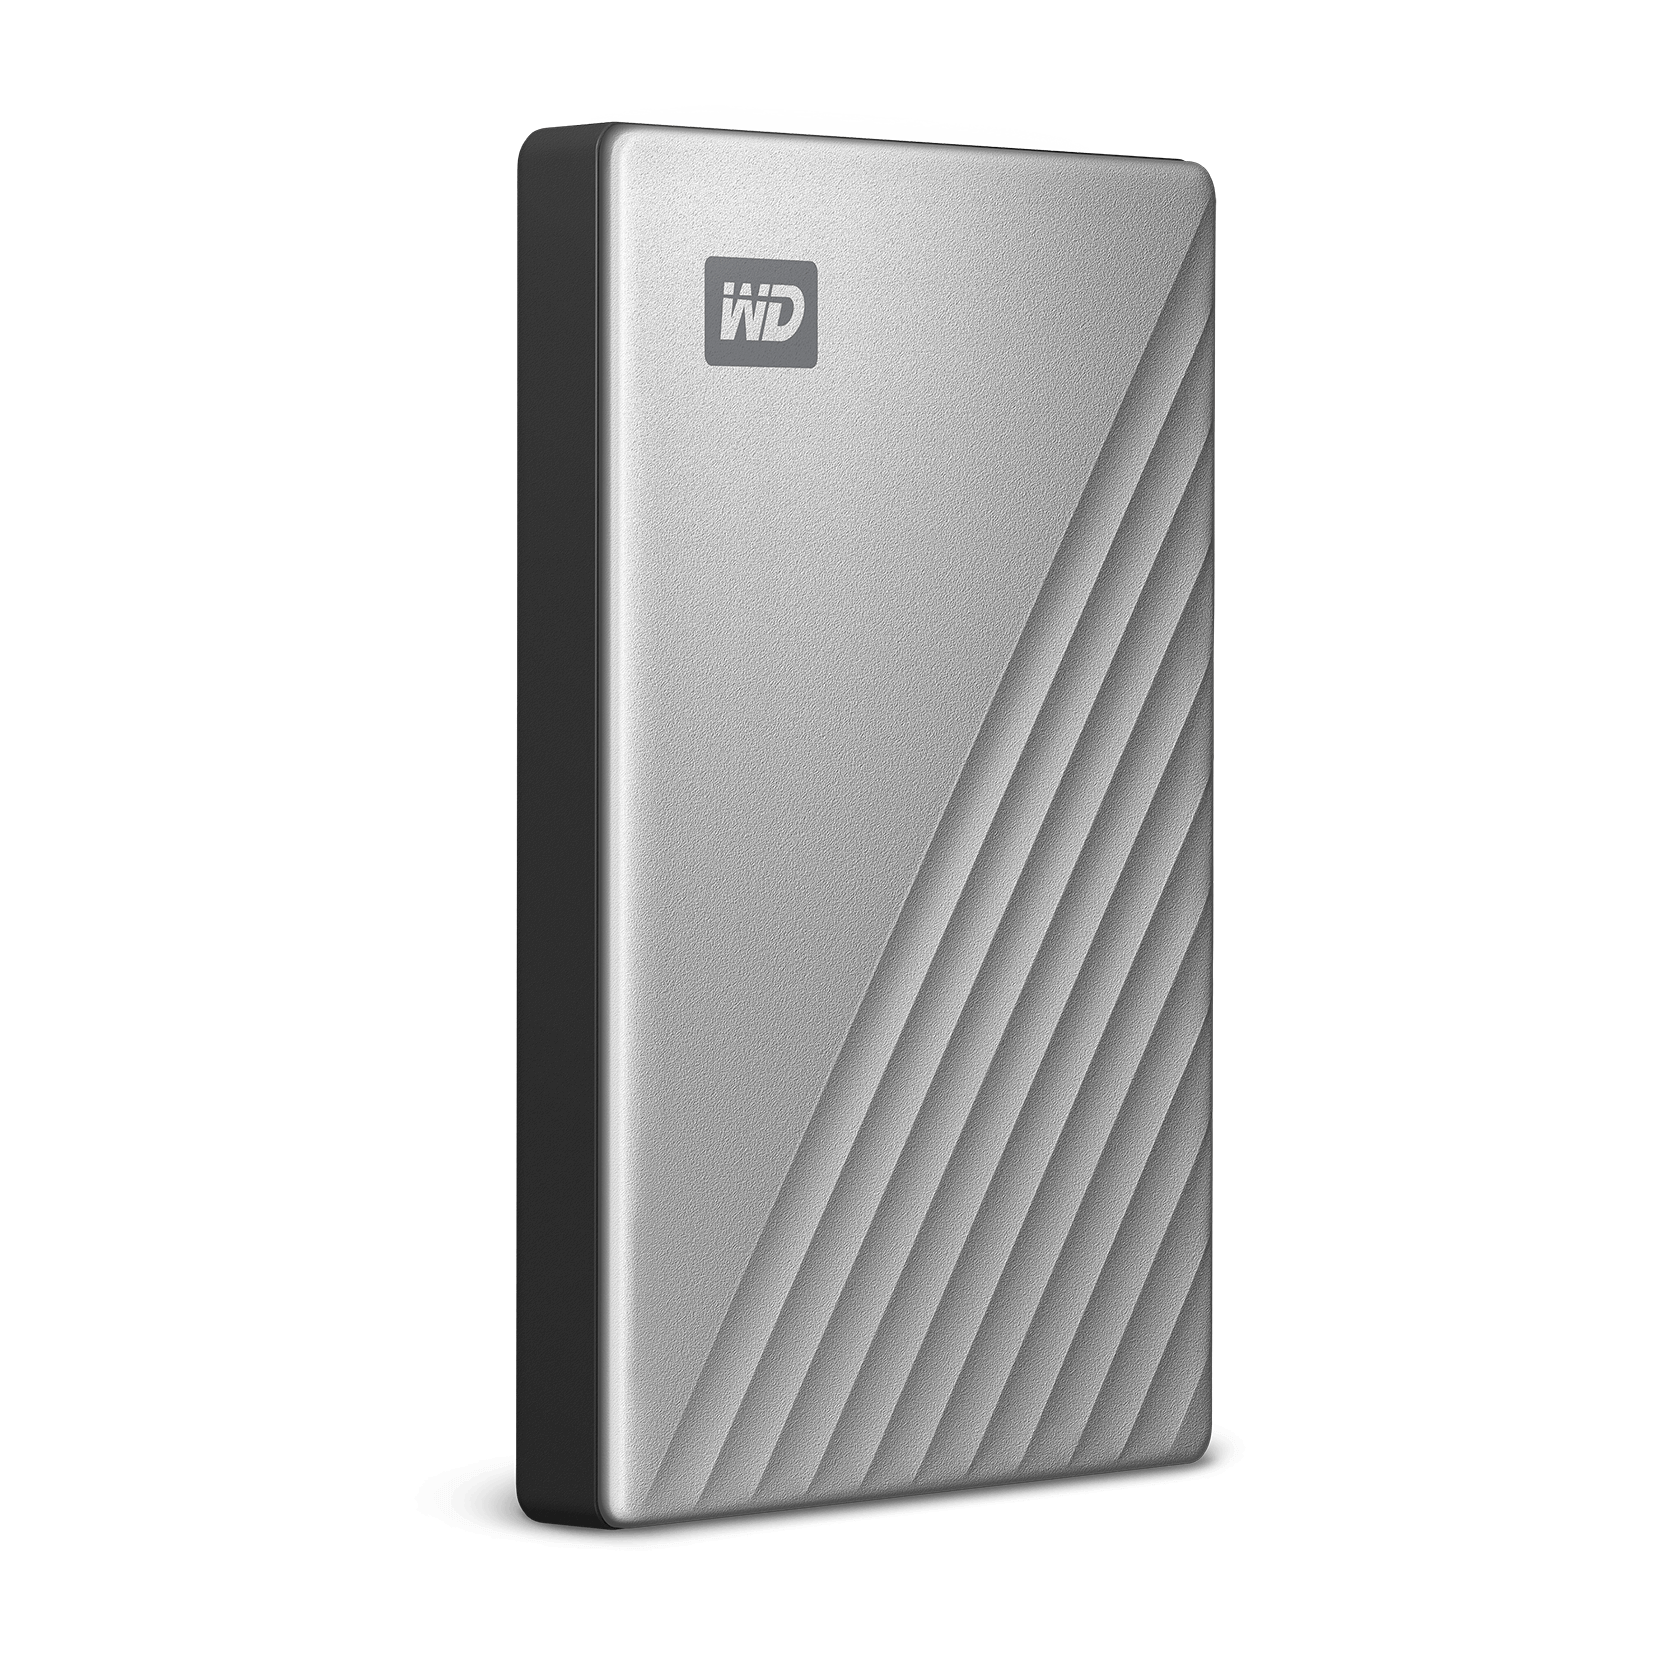 WD My Passport Ultra 1TB External USB 3.0 Portable Hard Drive with Hardware...